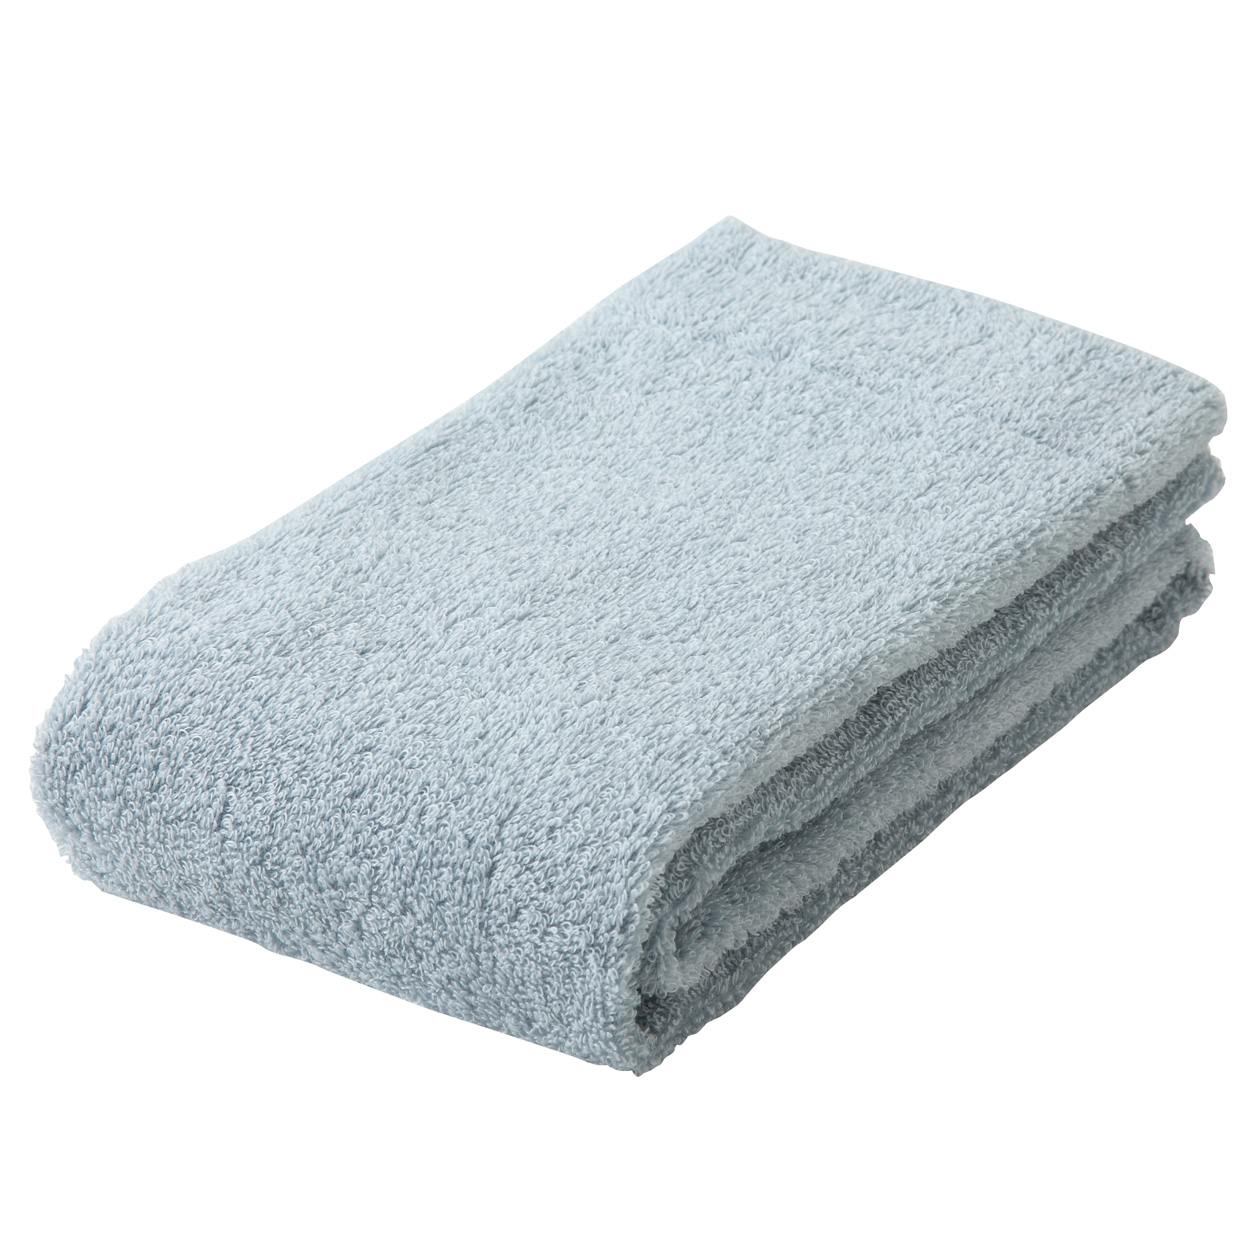 light blue thin face towel